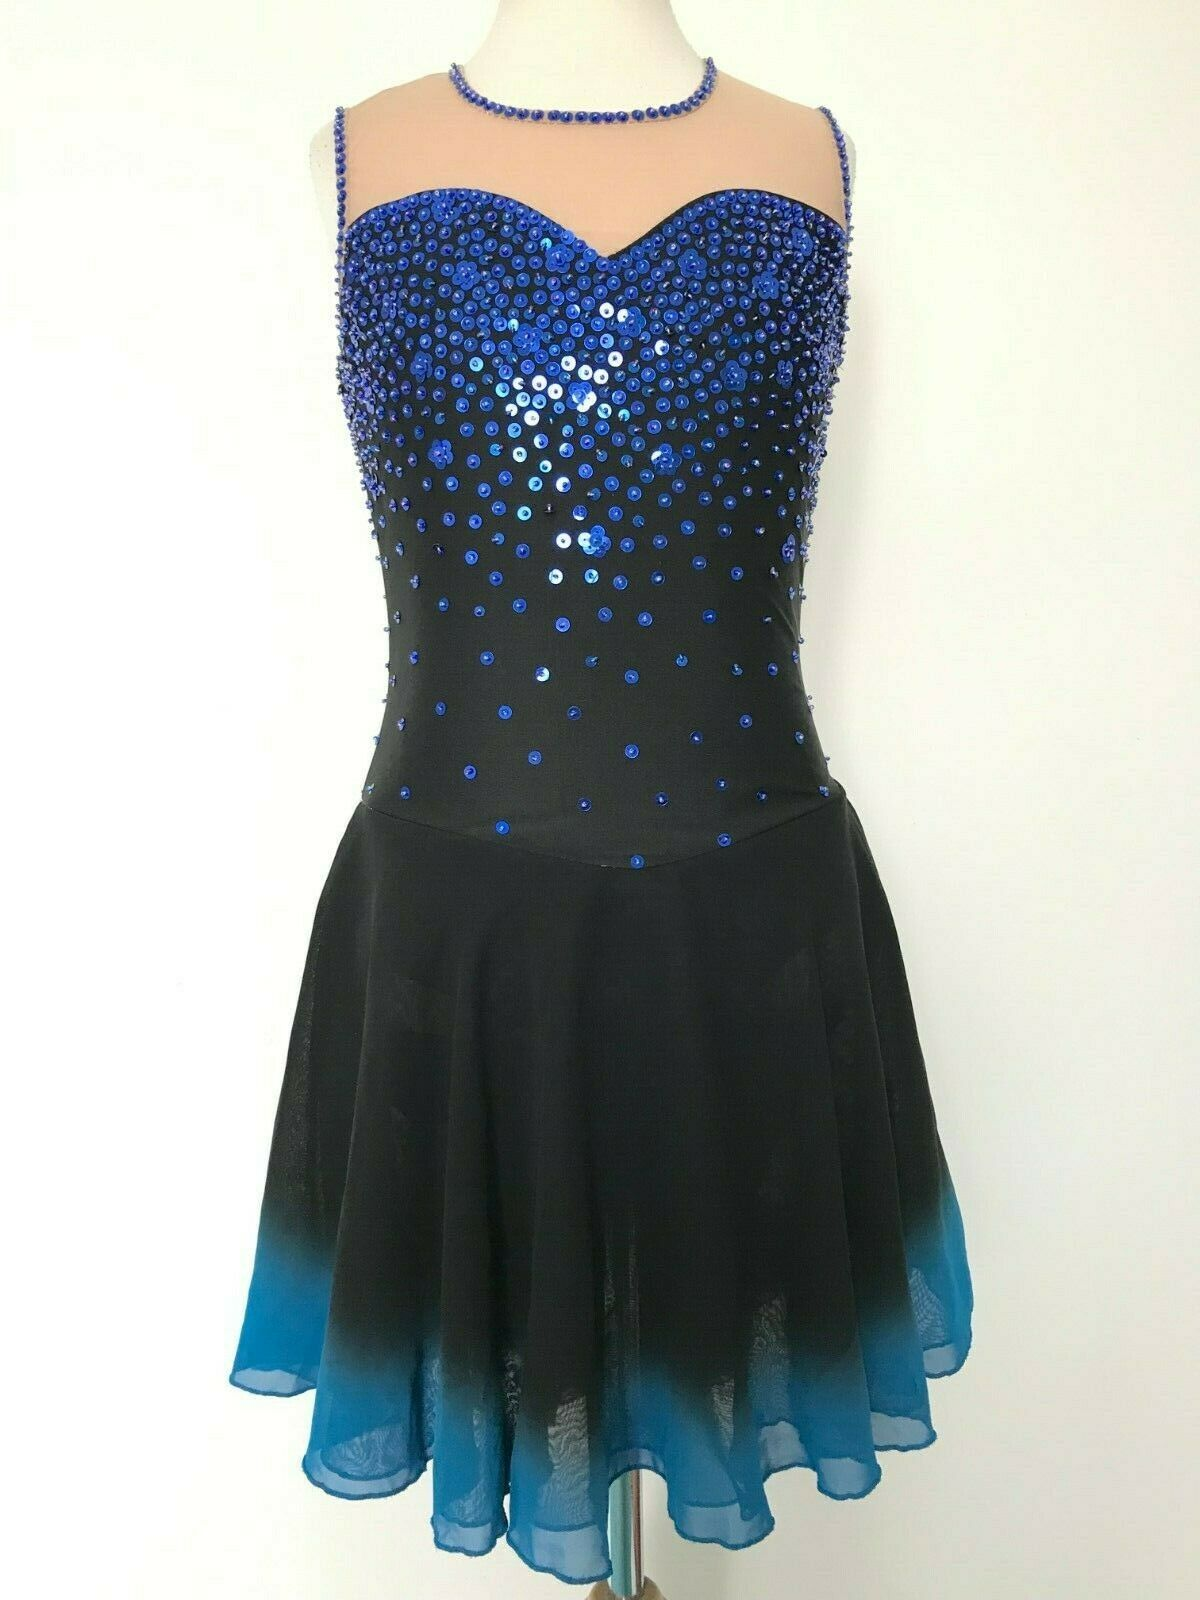 SALE  NEW FIGURE ICE SKATING  DANCE DRESS COSTUME ADULT S  large discount